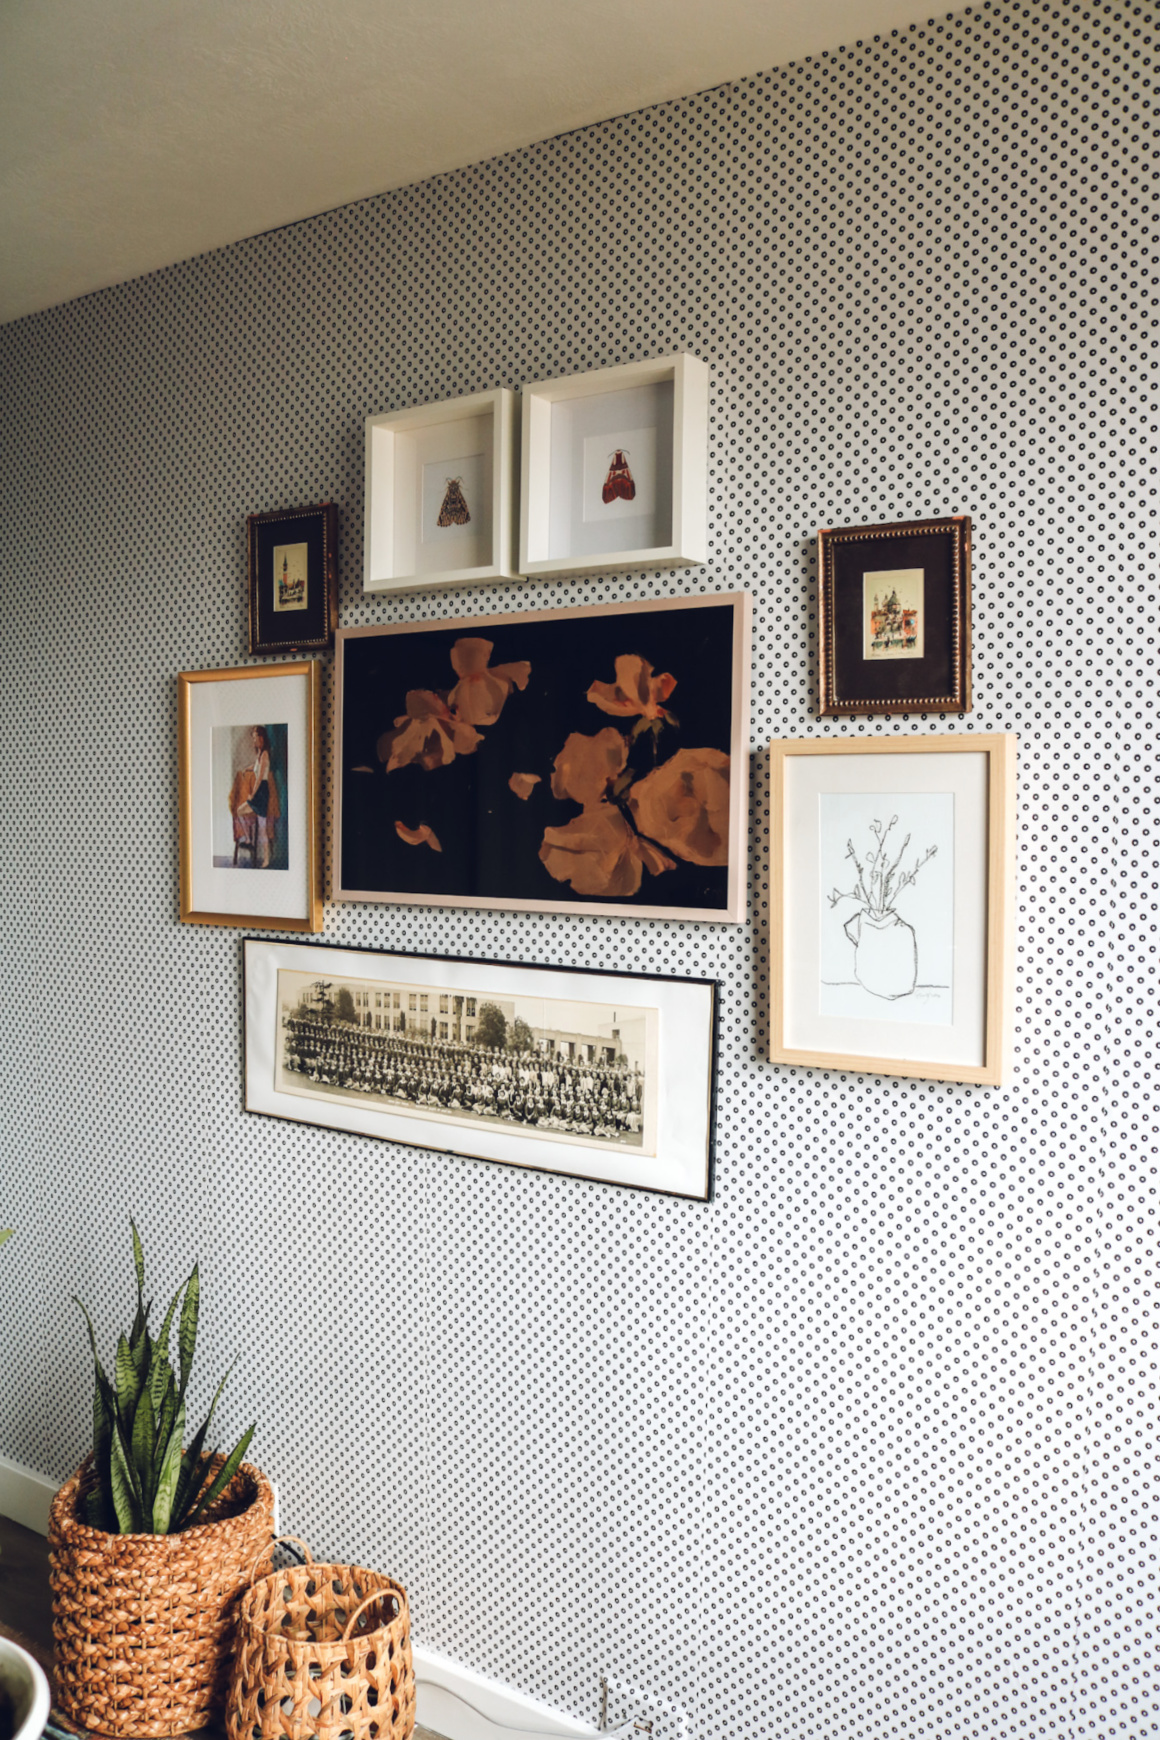 Gallery Wall with Frame TV and Favorite Art Downloads